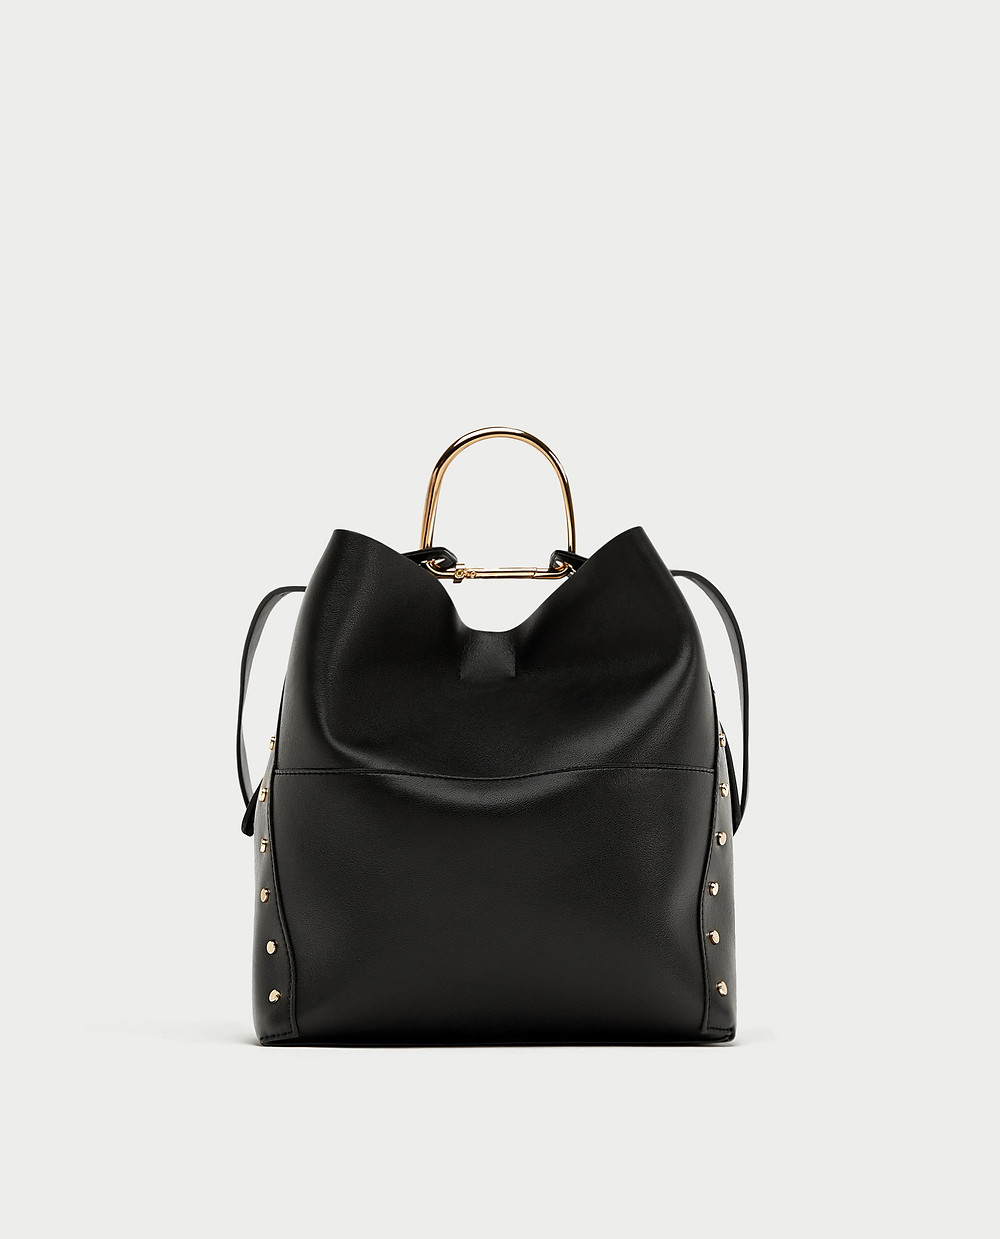 Zara Studded Bucket Bag in black